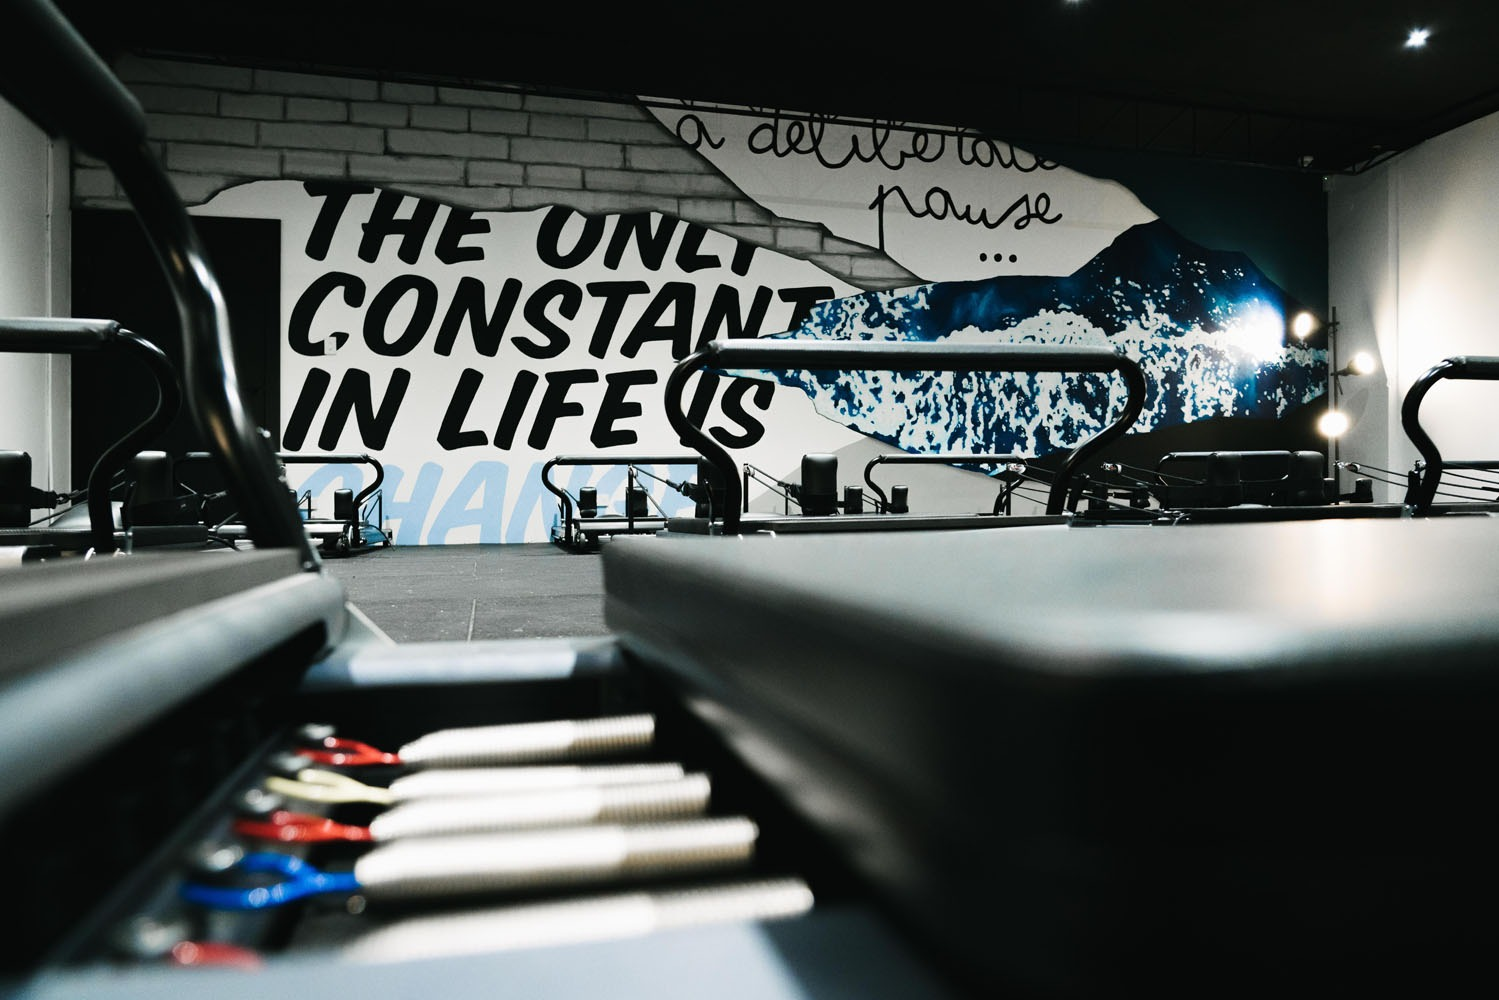 the-art-of-wall-studio-elipsis-mural-hand-painted-wall-art-lettering-ocean-quote-gym-mural-7